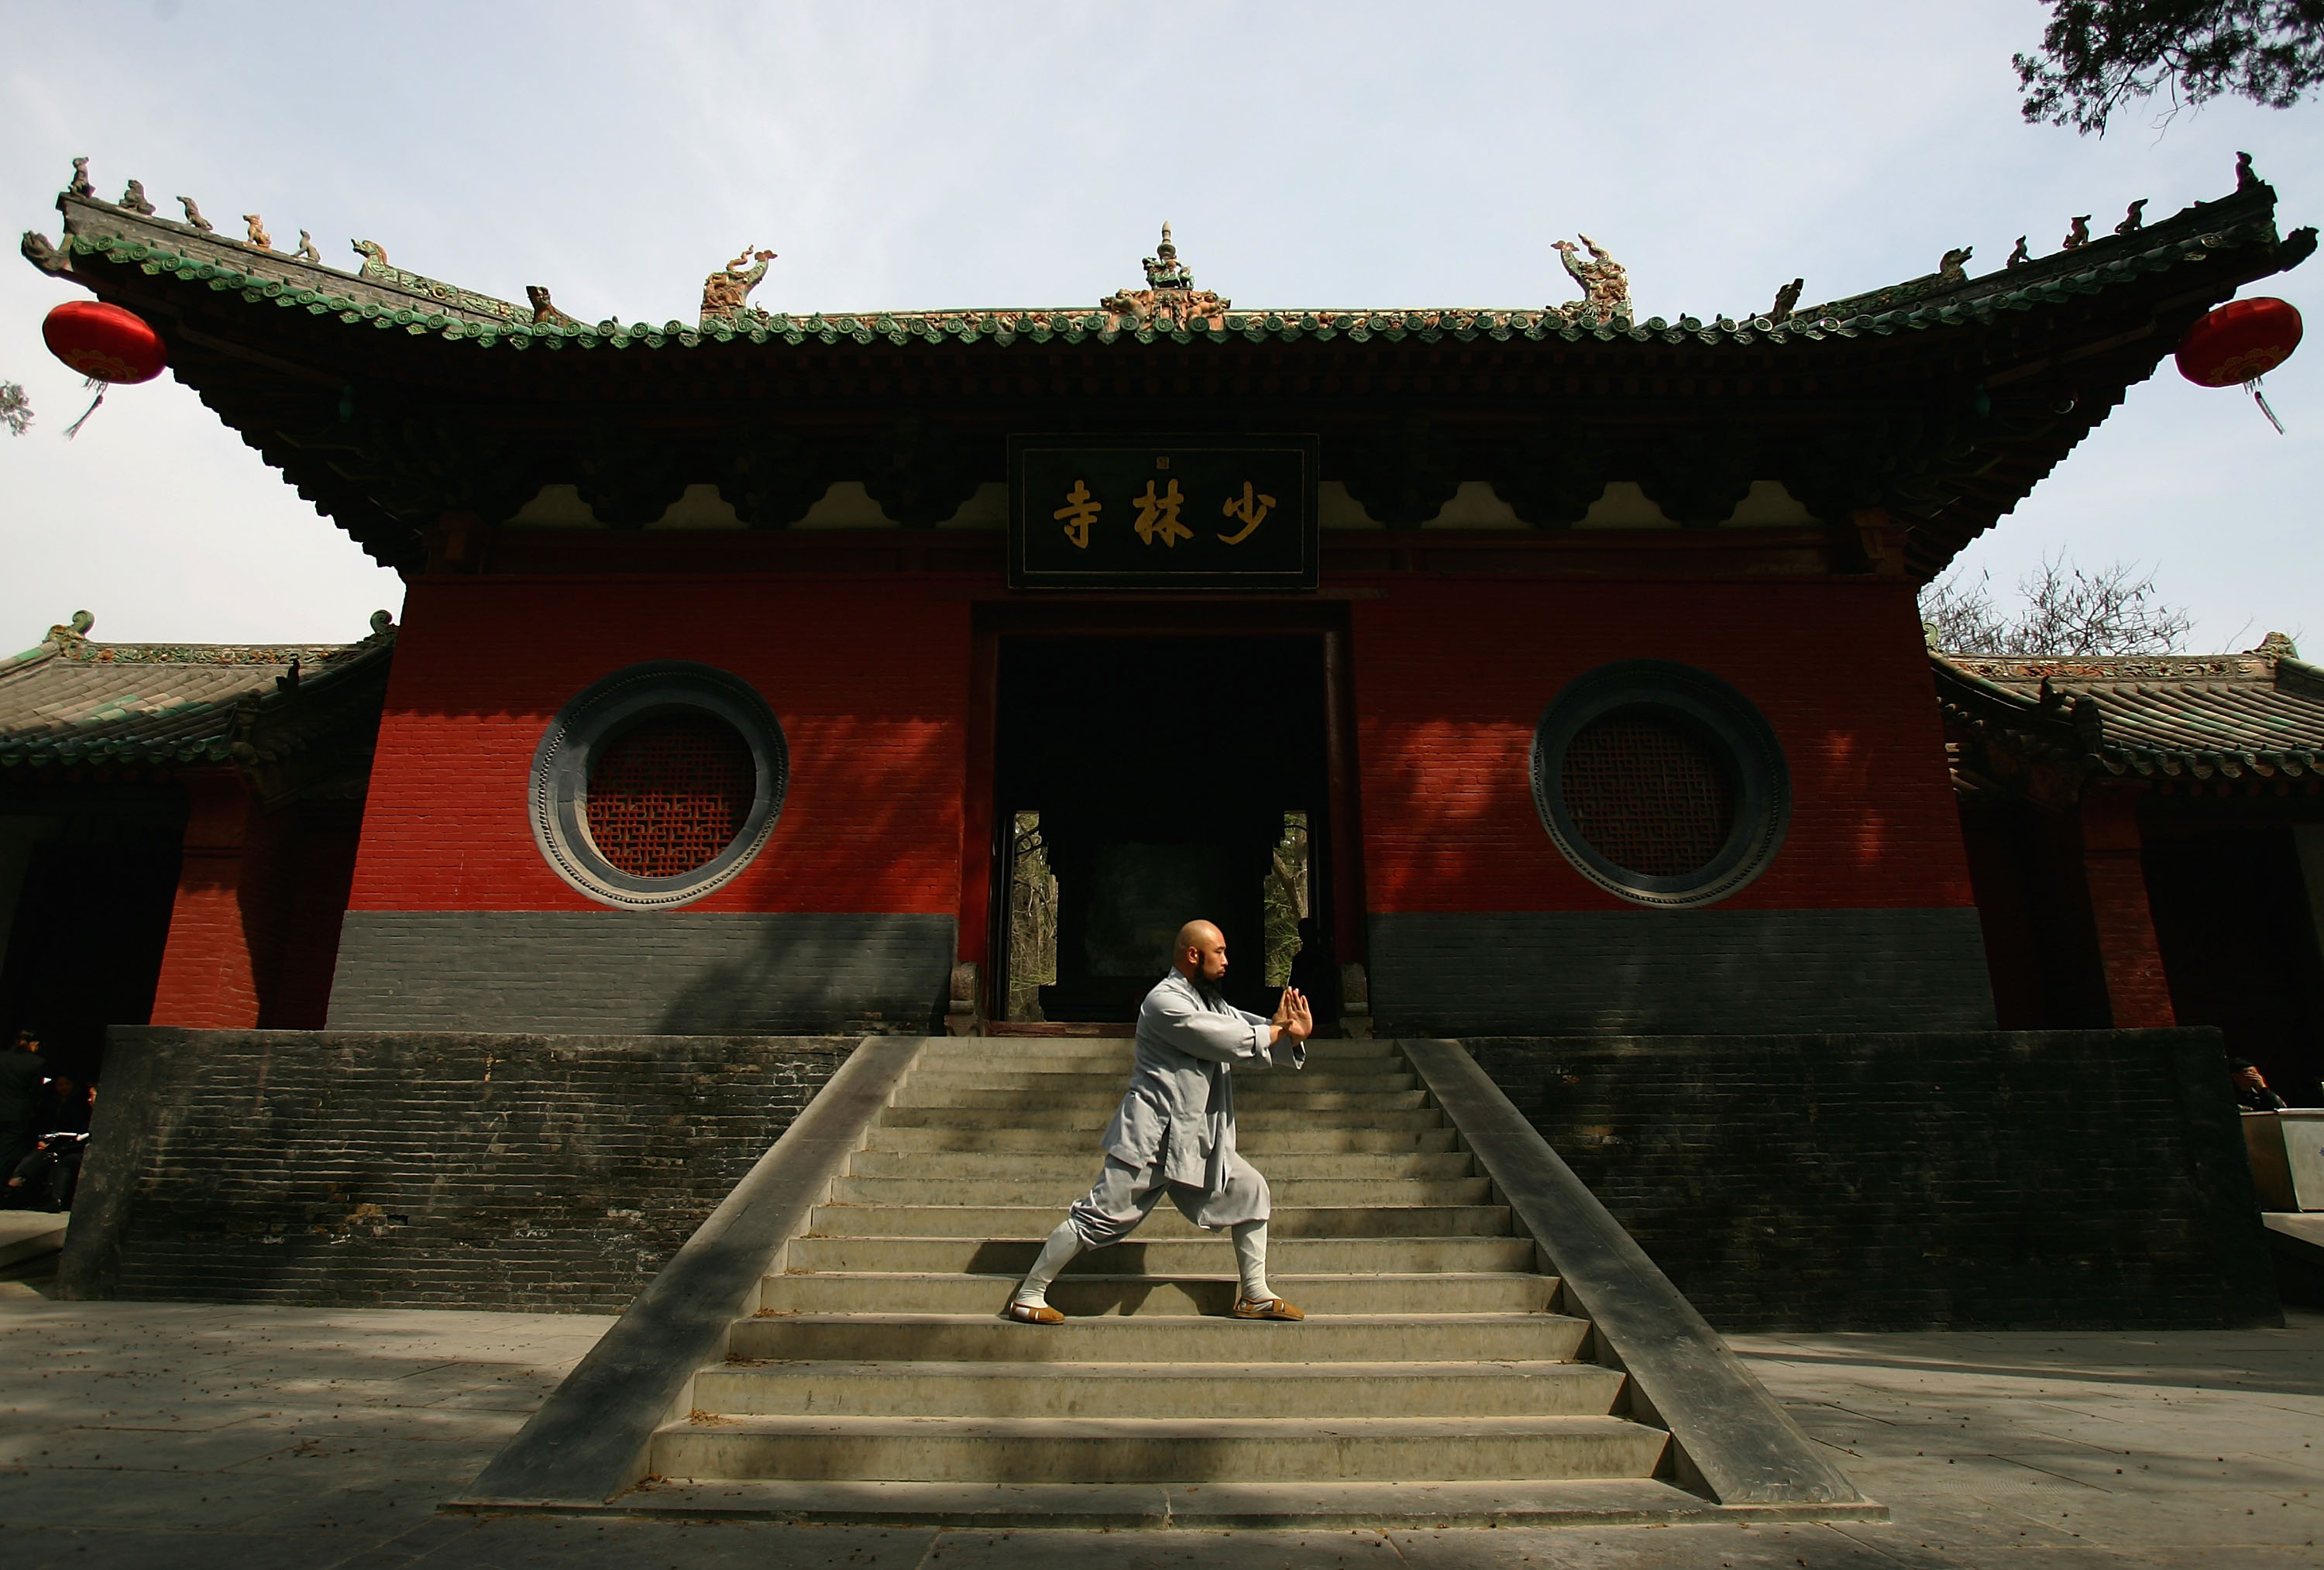 History of the Shaolin Temple